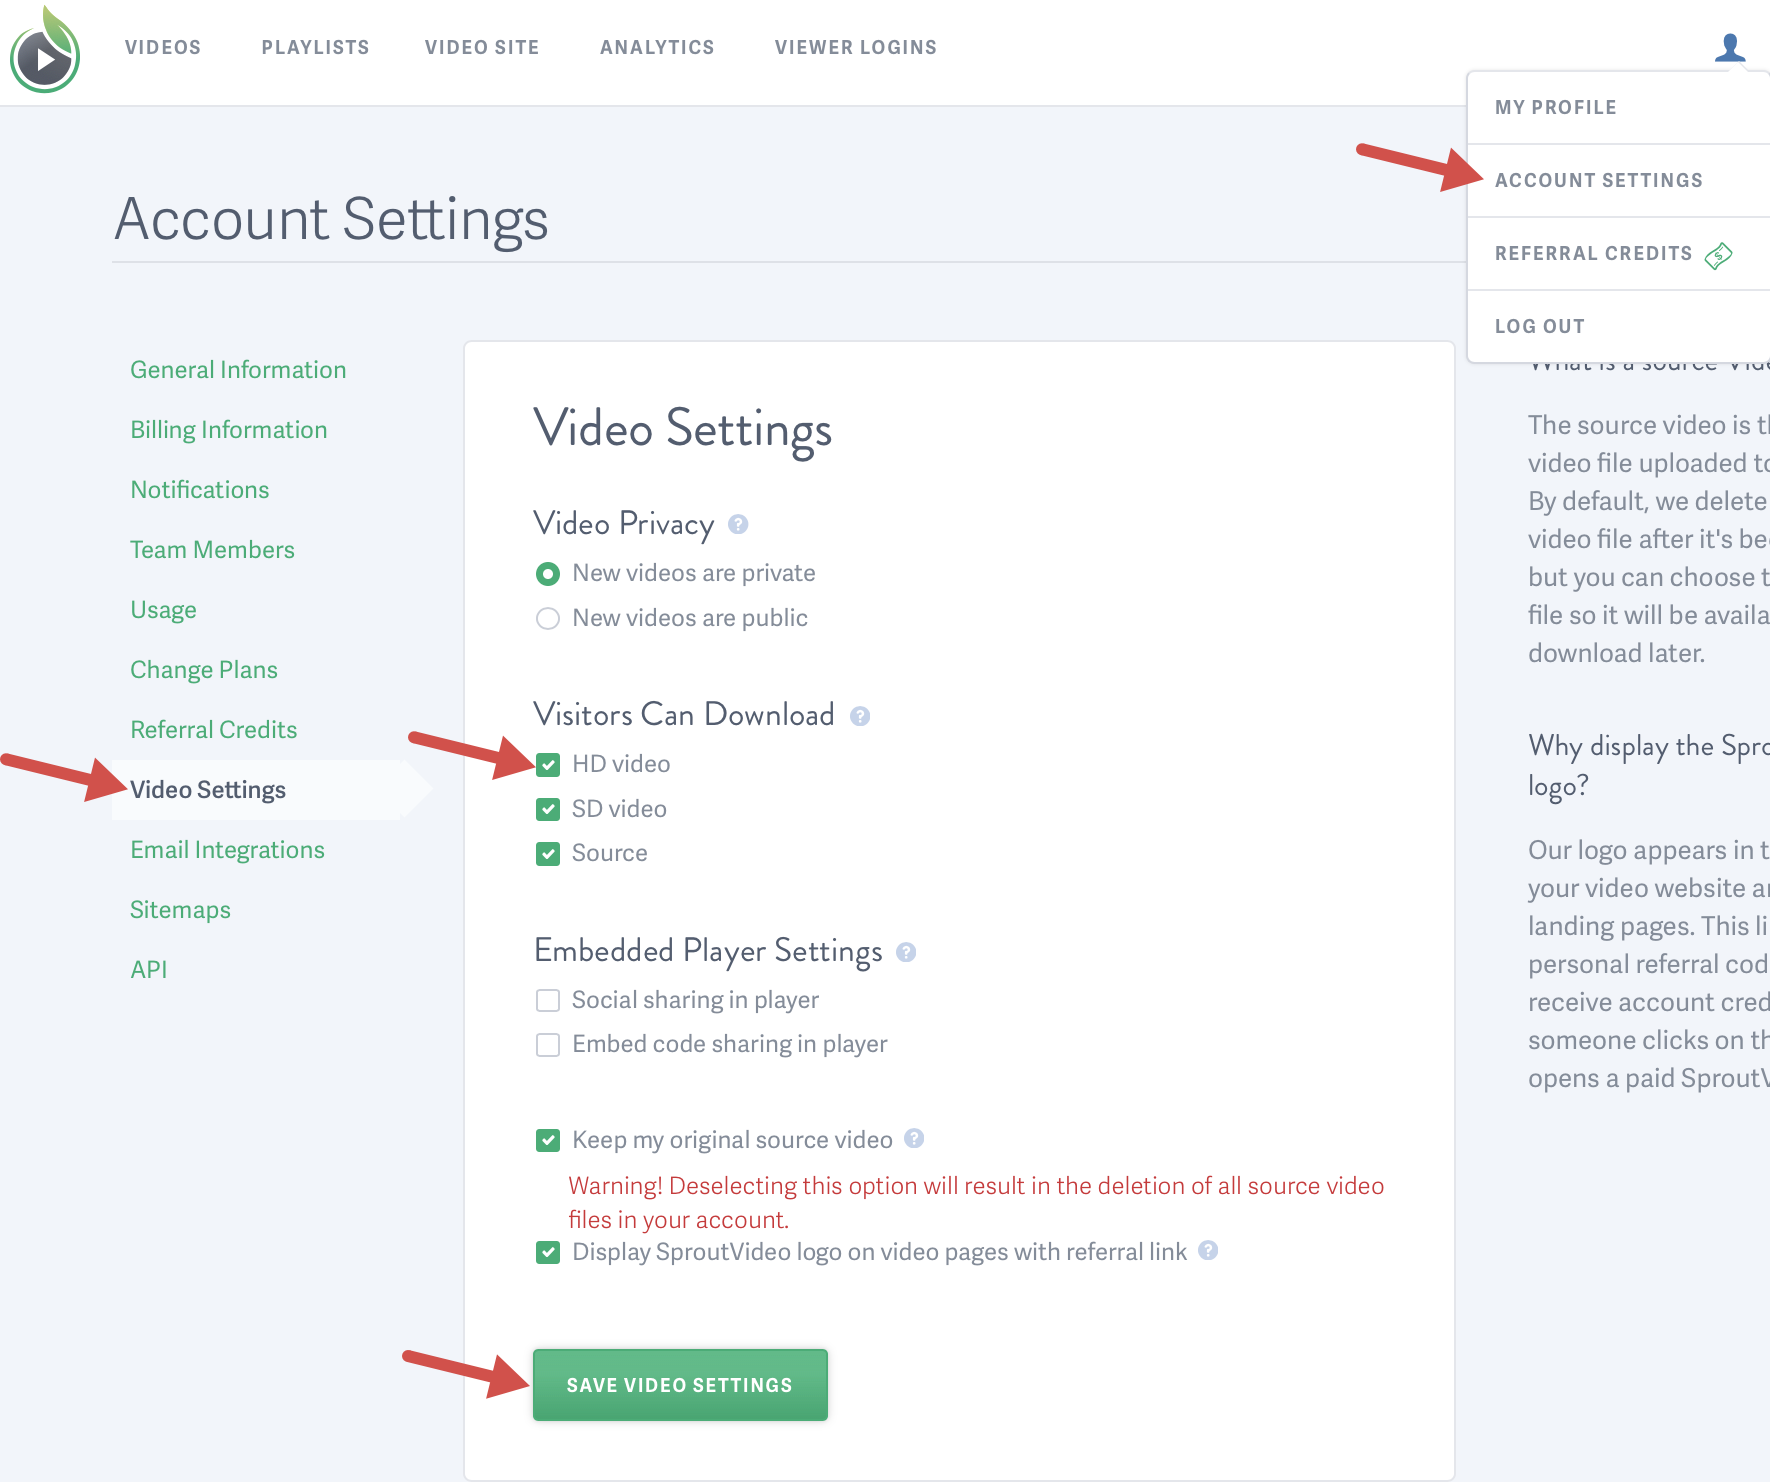 Visitor Download Settings for videos hosted on SproutVideo